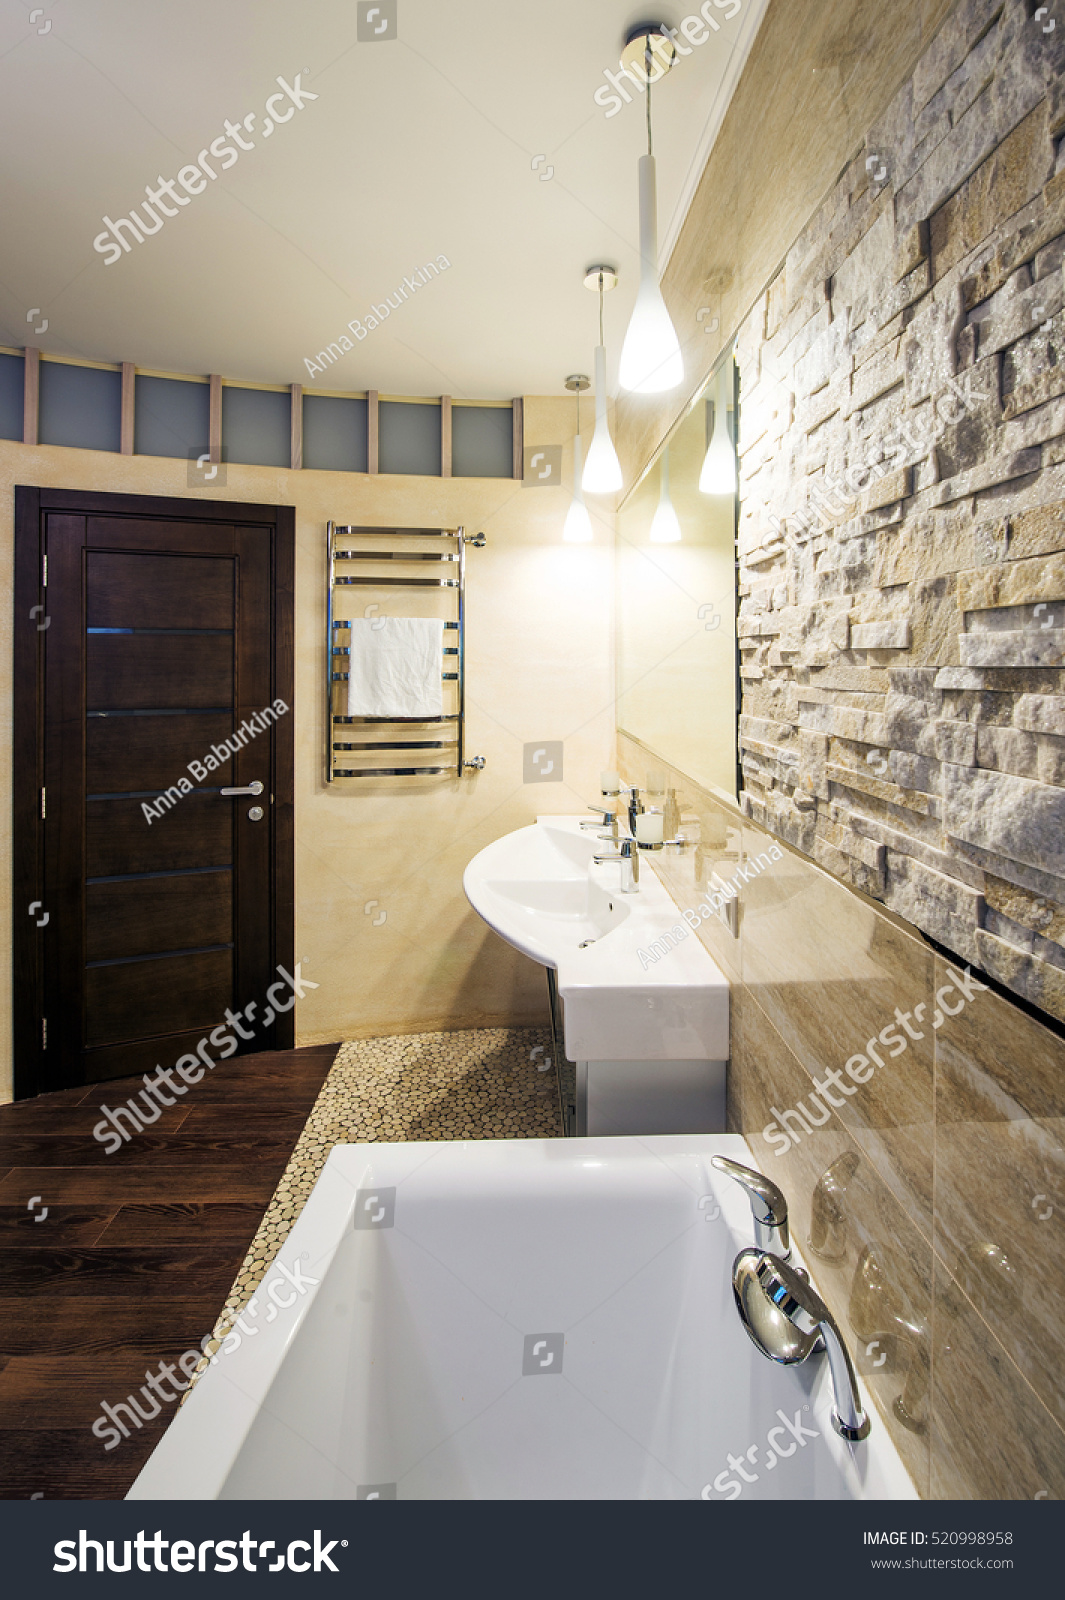 Modern Spacious Bathroom Suite Designed Luxury Stock Photo 520998958 Shutterstock